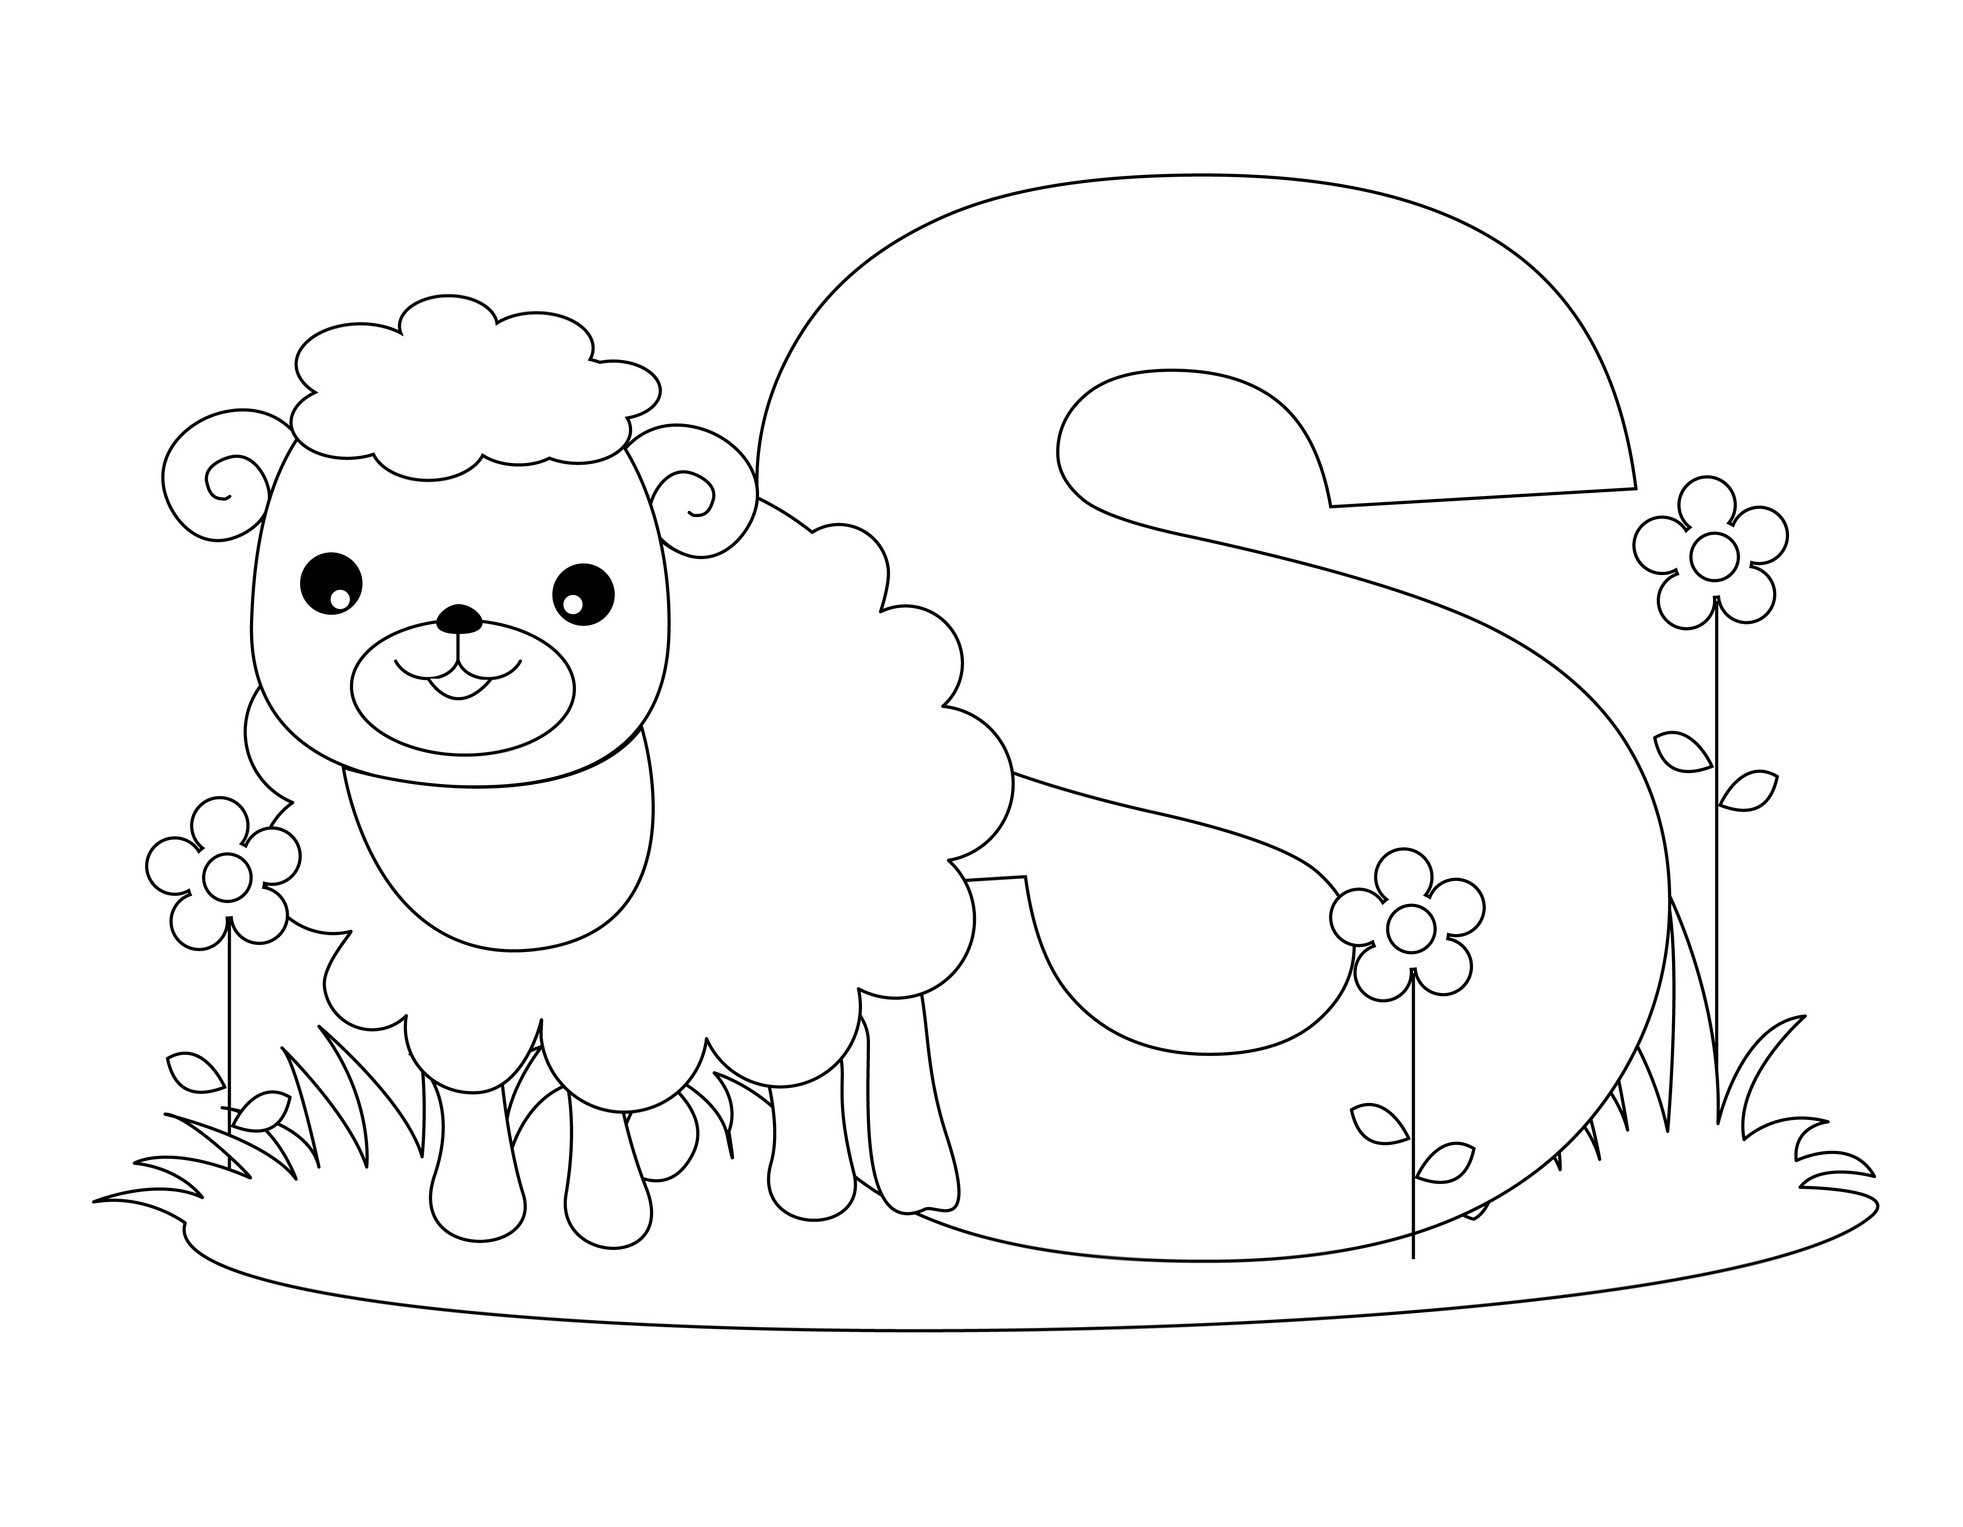 animal alphabet colouring pages animal alphabet letter t coloring turtle coloring alphabet colouring animal pages